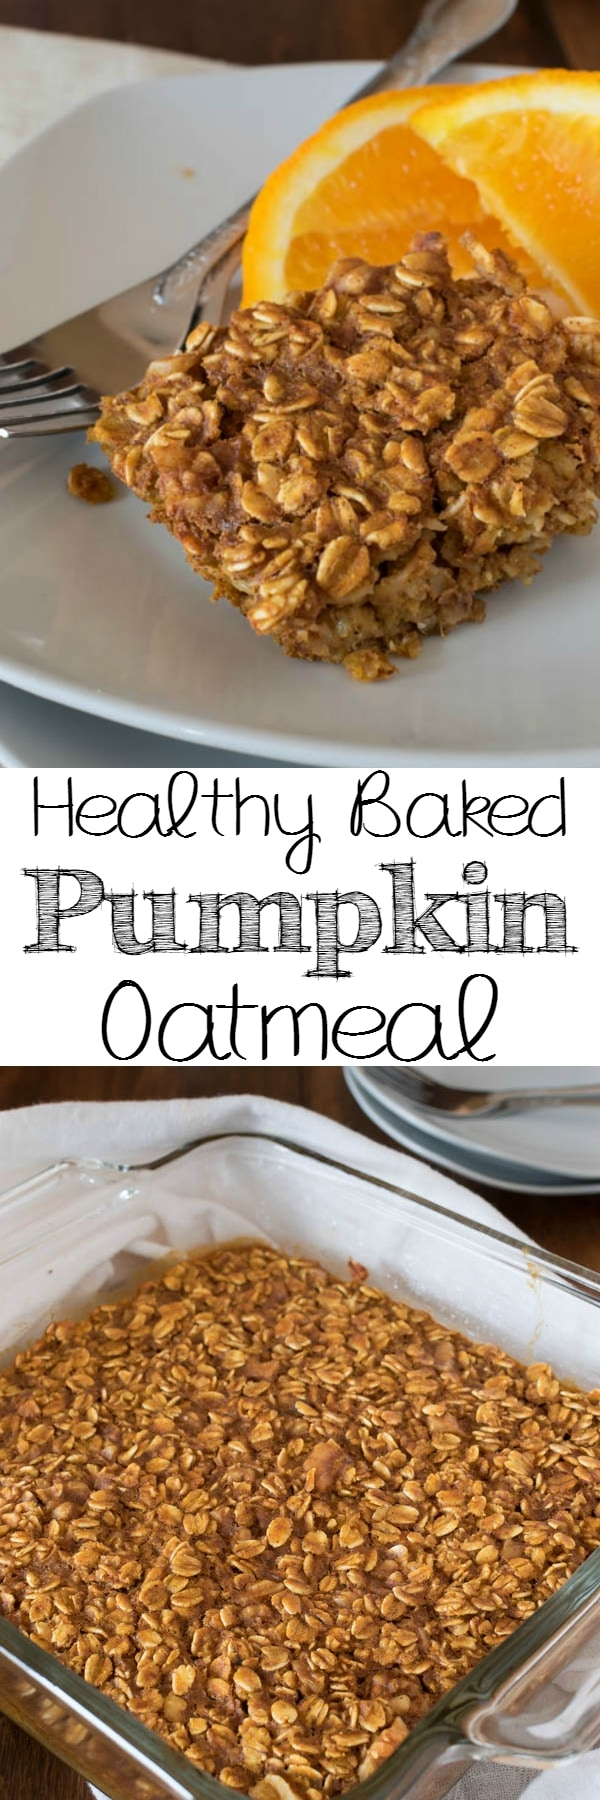 Healthy Baked Pumpkin Oatmeal is the perfect make-ahead breakfast. It's so tasty, you could even have it for dessert!